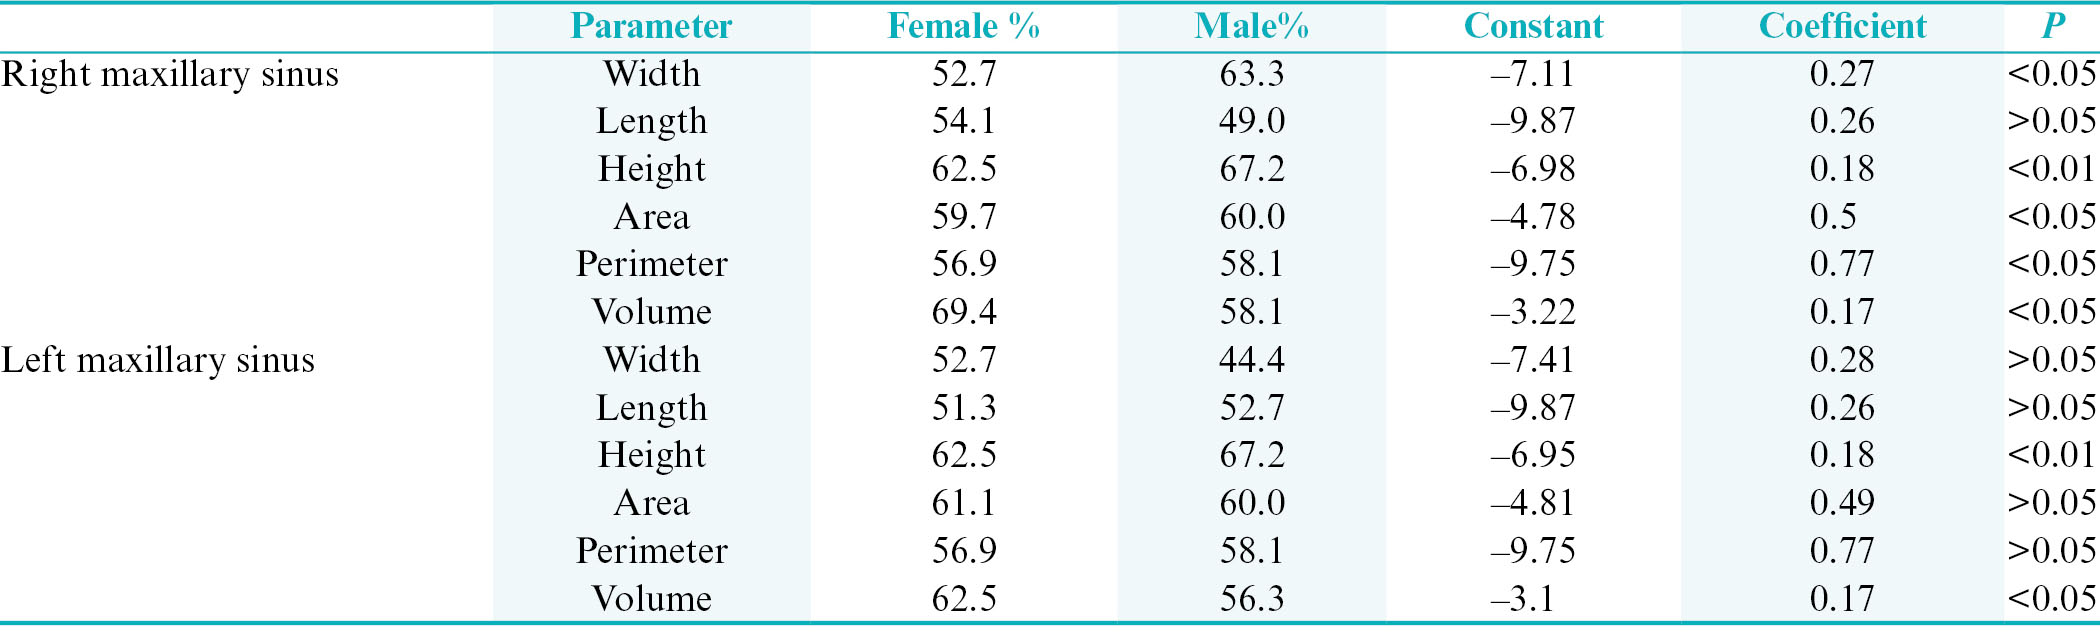 Table 3: Coefficients and level of precision of the discriminant analysis function in the determination of sex according to the side of the maxillary sinus